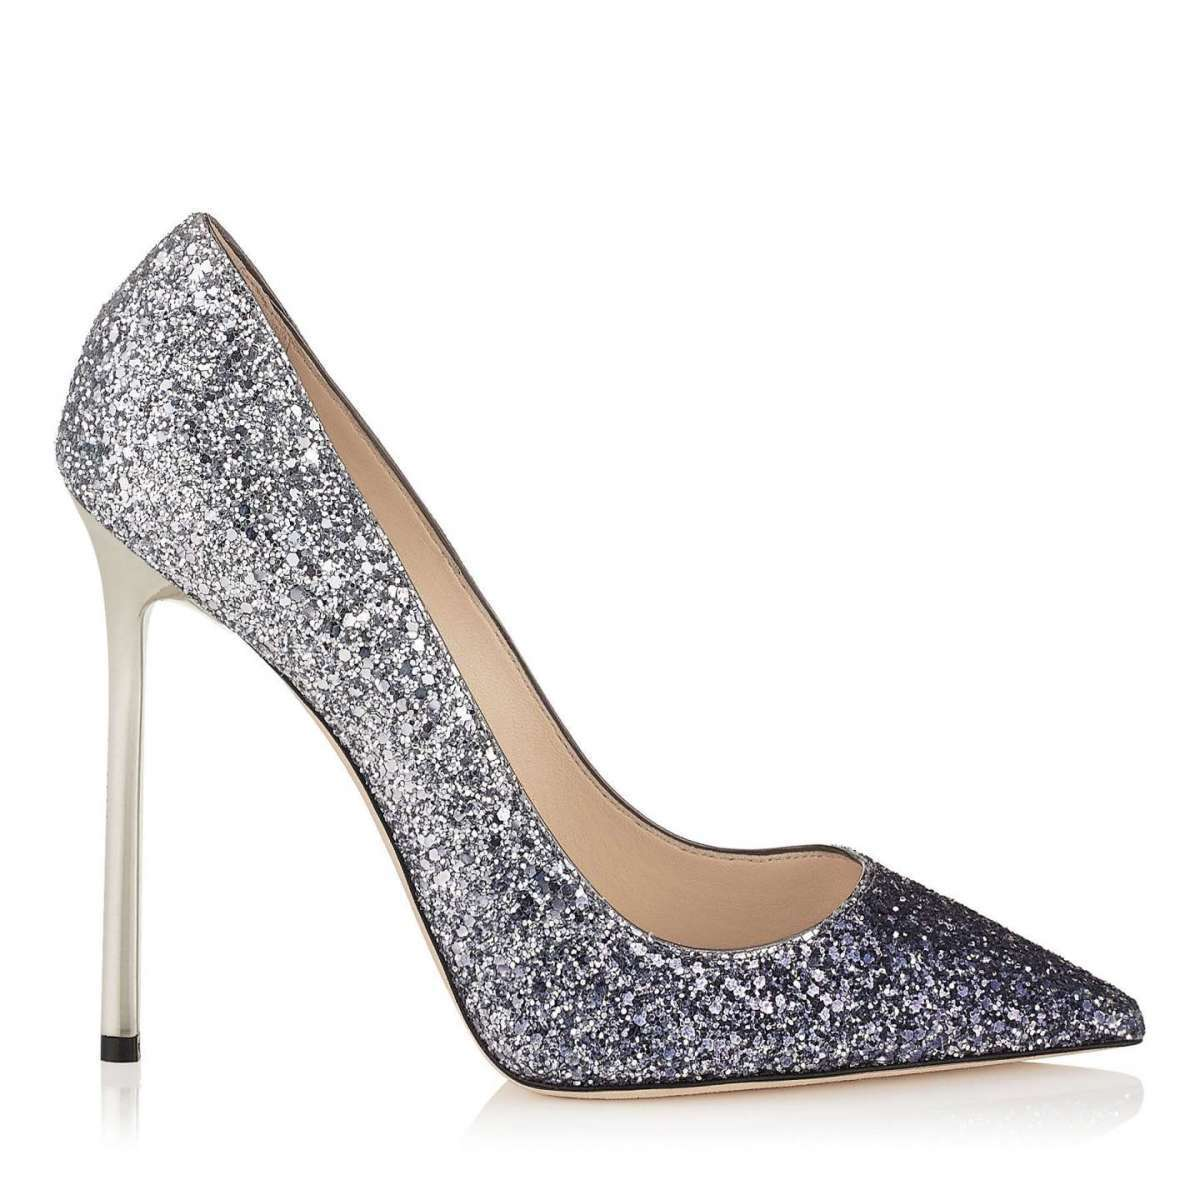 decolletes-glitterate-jimmy-choo